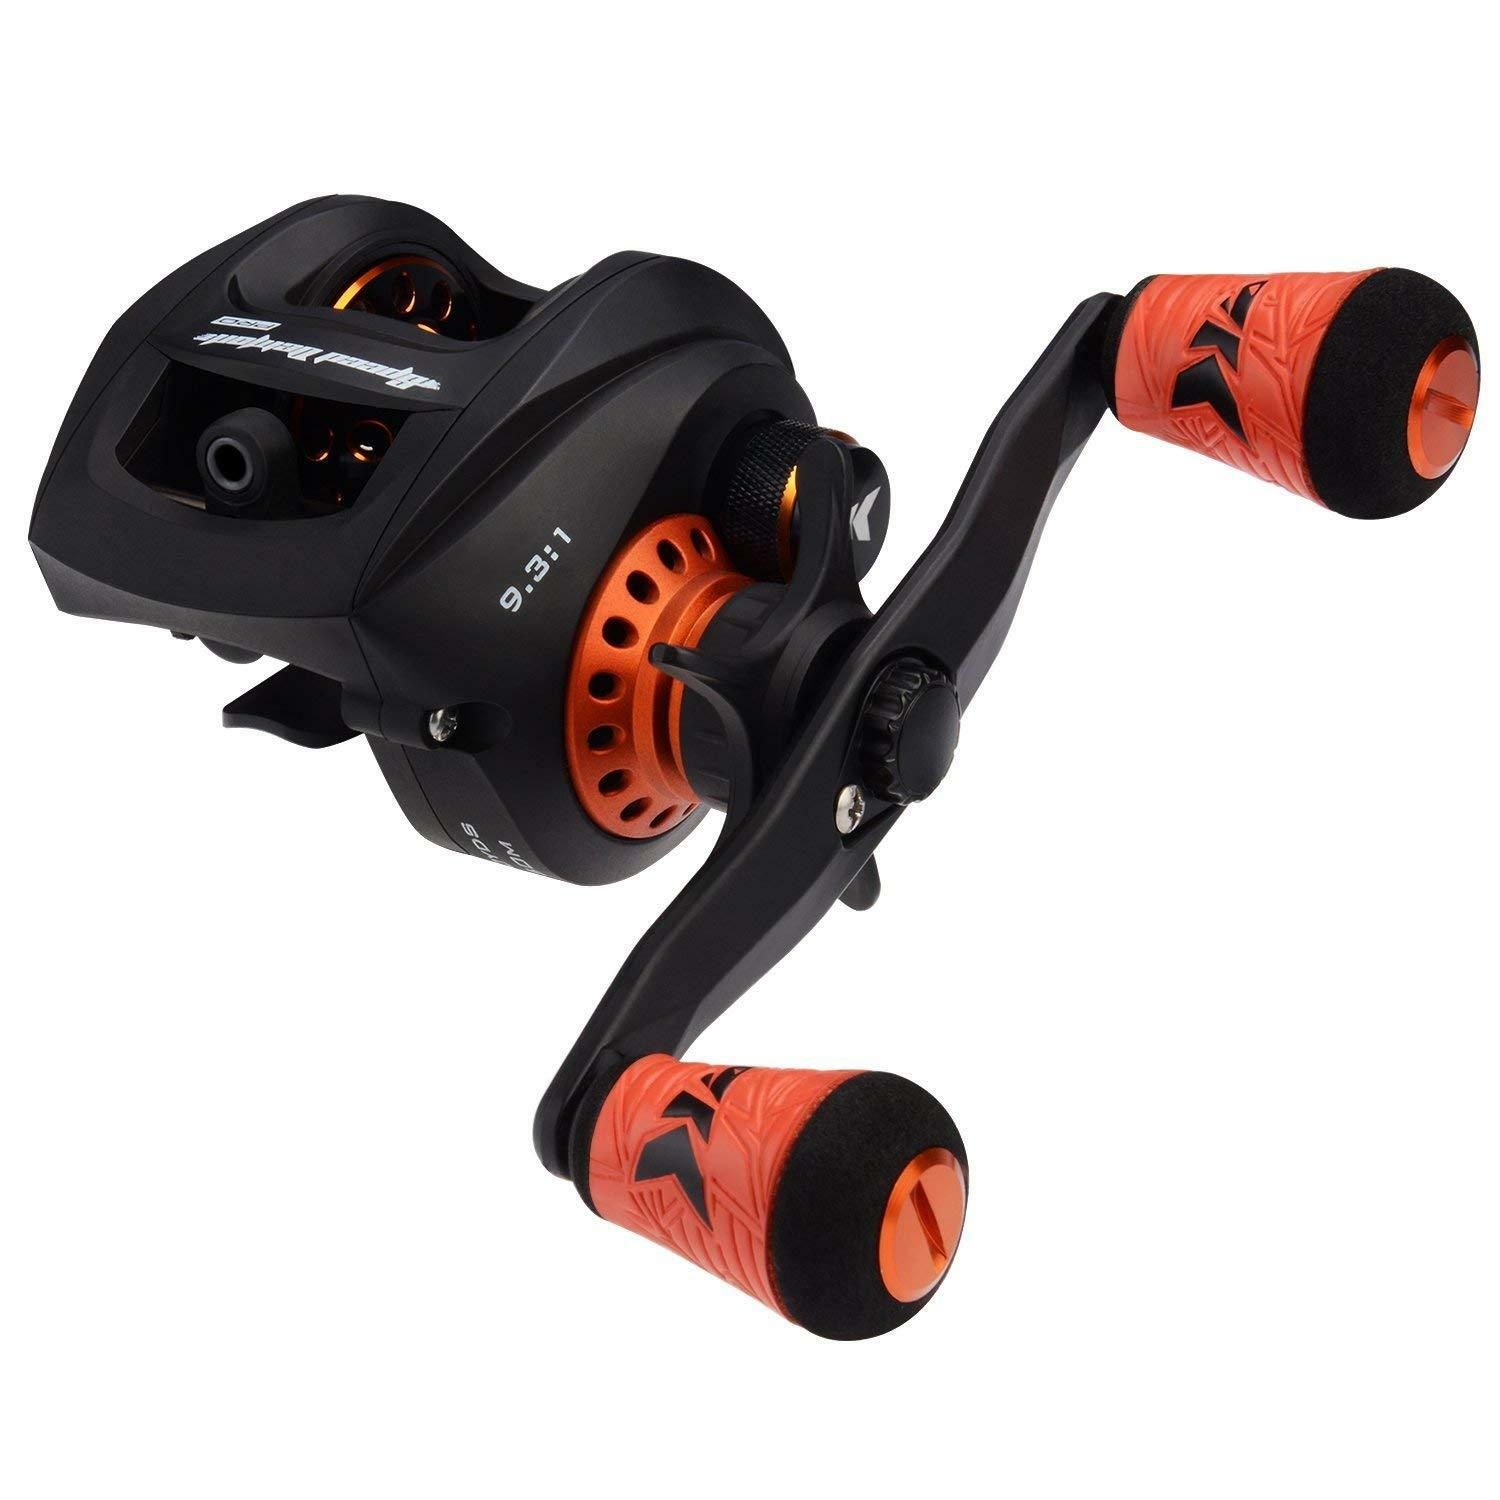 KastKing NEW Speed Demon Pro Baitcasting Reel High Speed 9.3 1 Gear Ratio 12+1